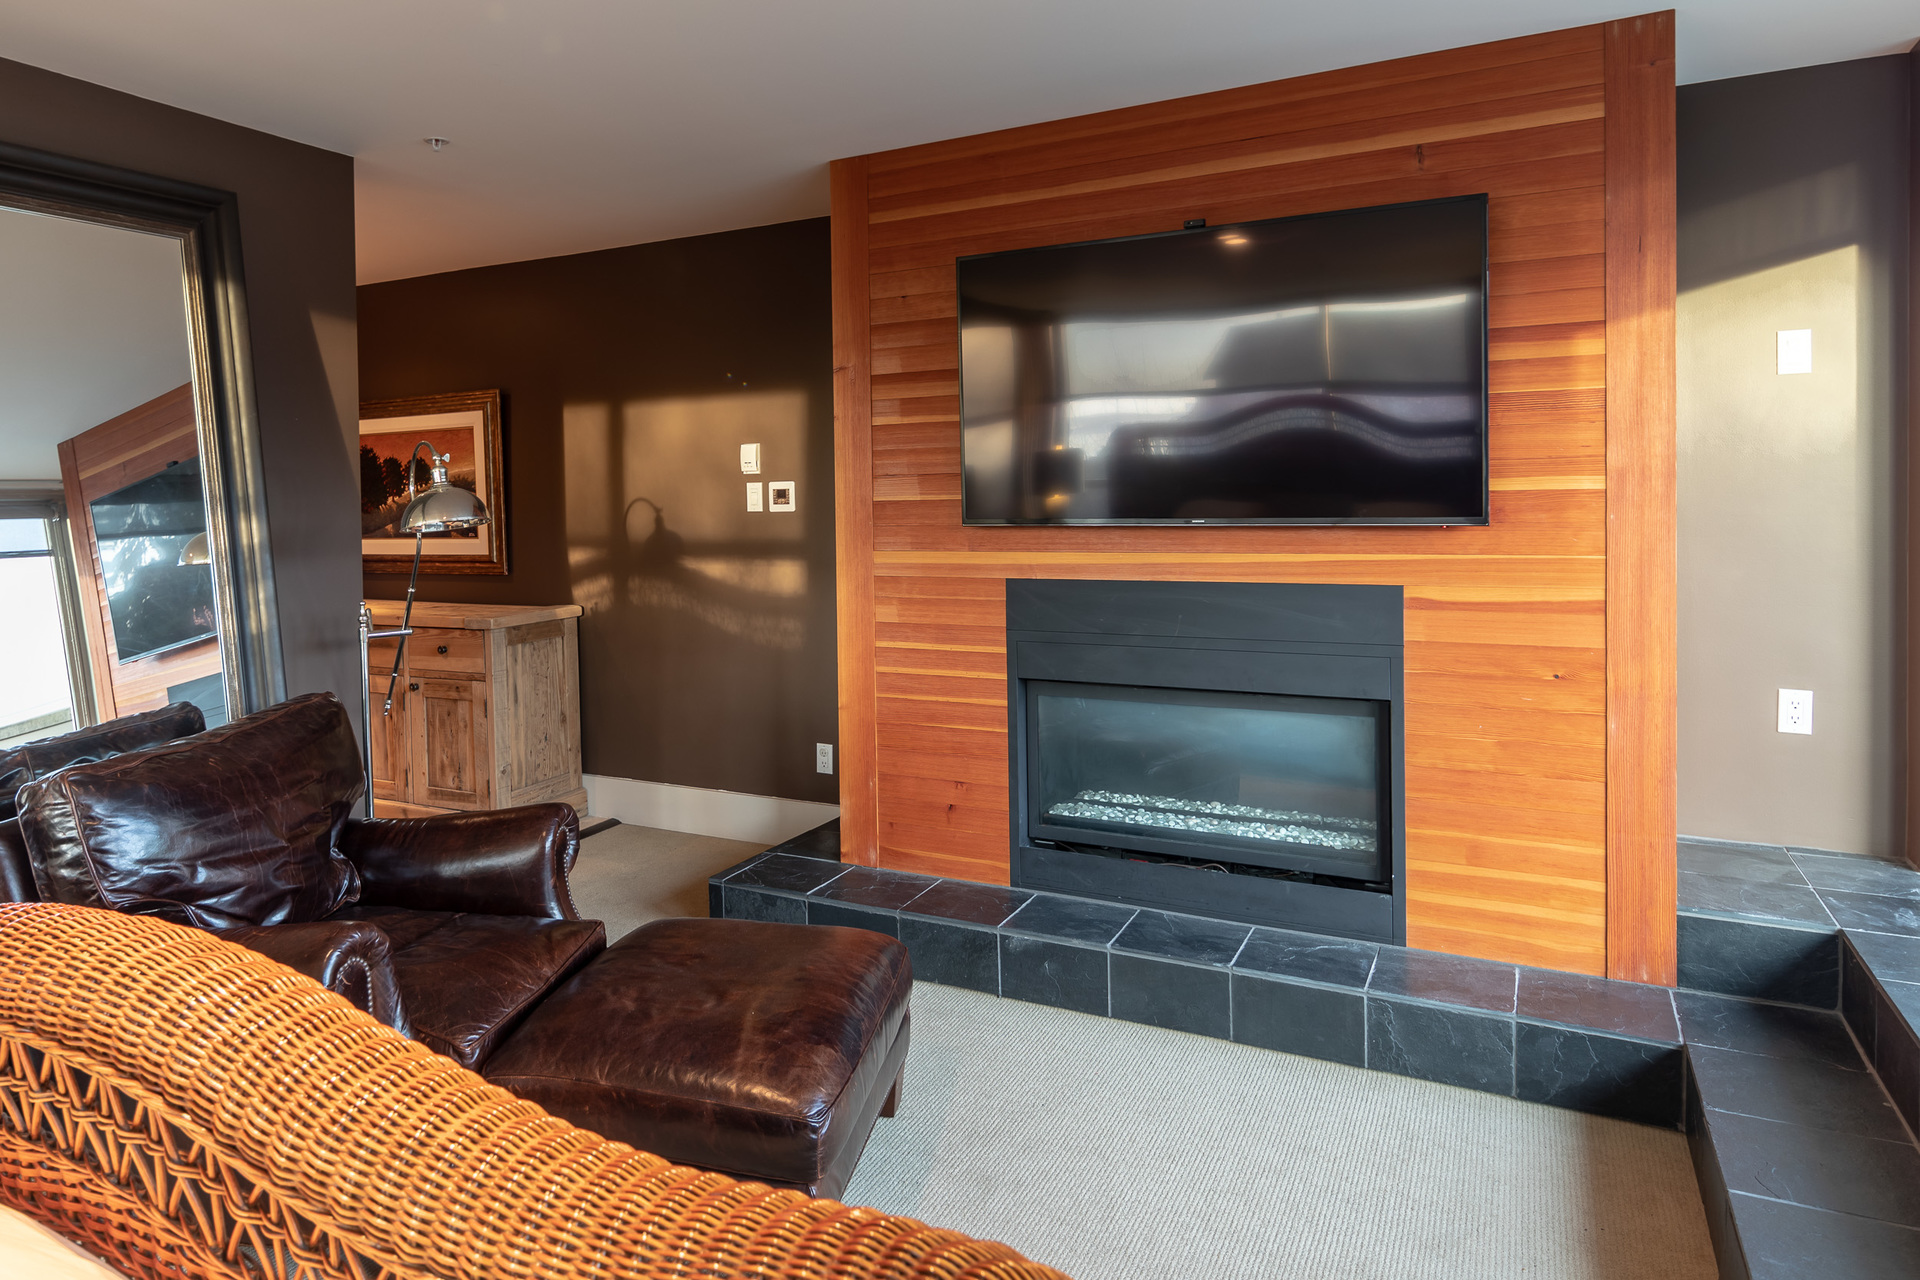 Master Bedroom Fireplace at 401 - 368 Main Street, Tofino Tofino, Vancouver Island